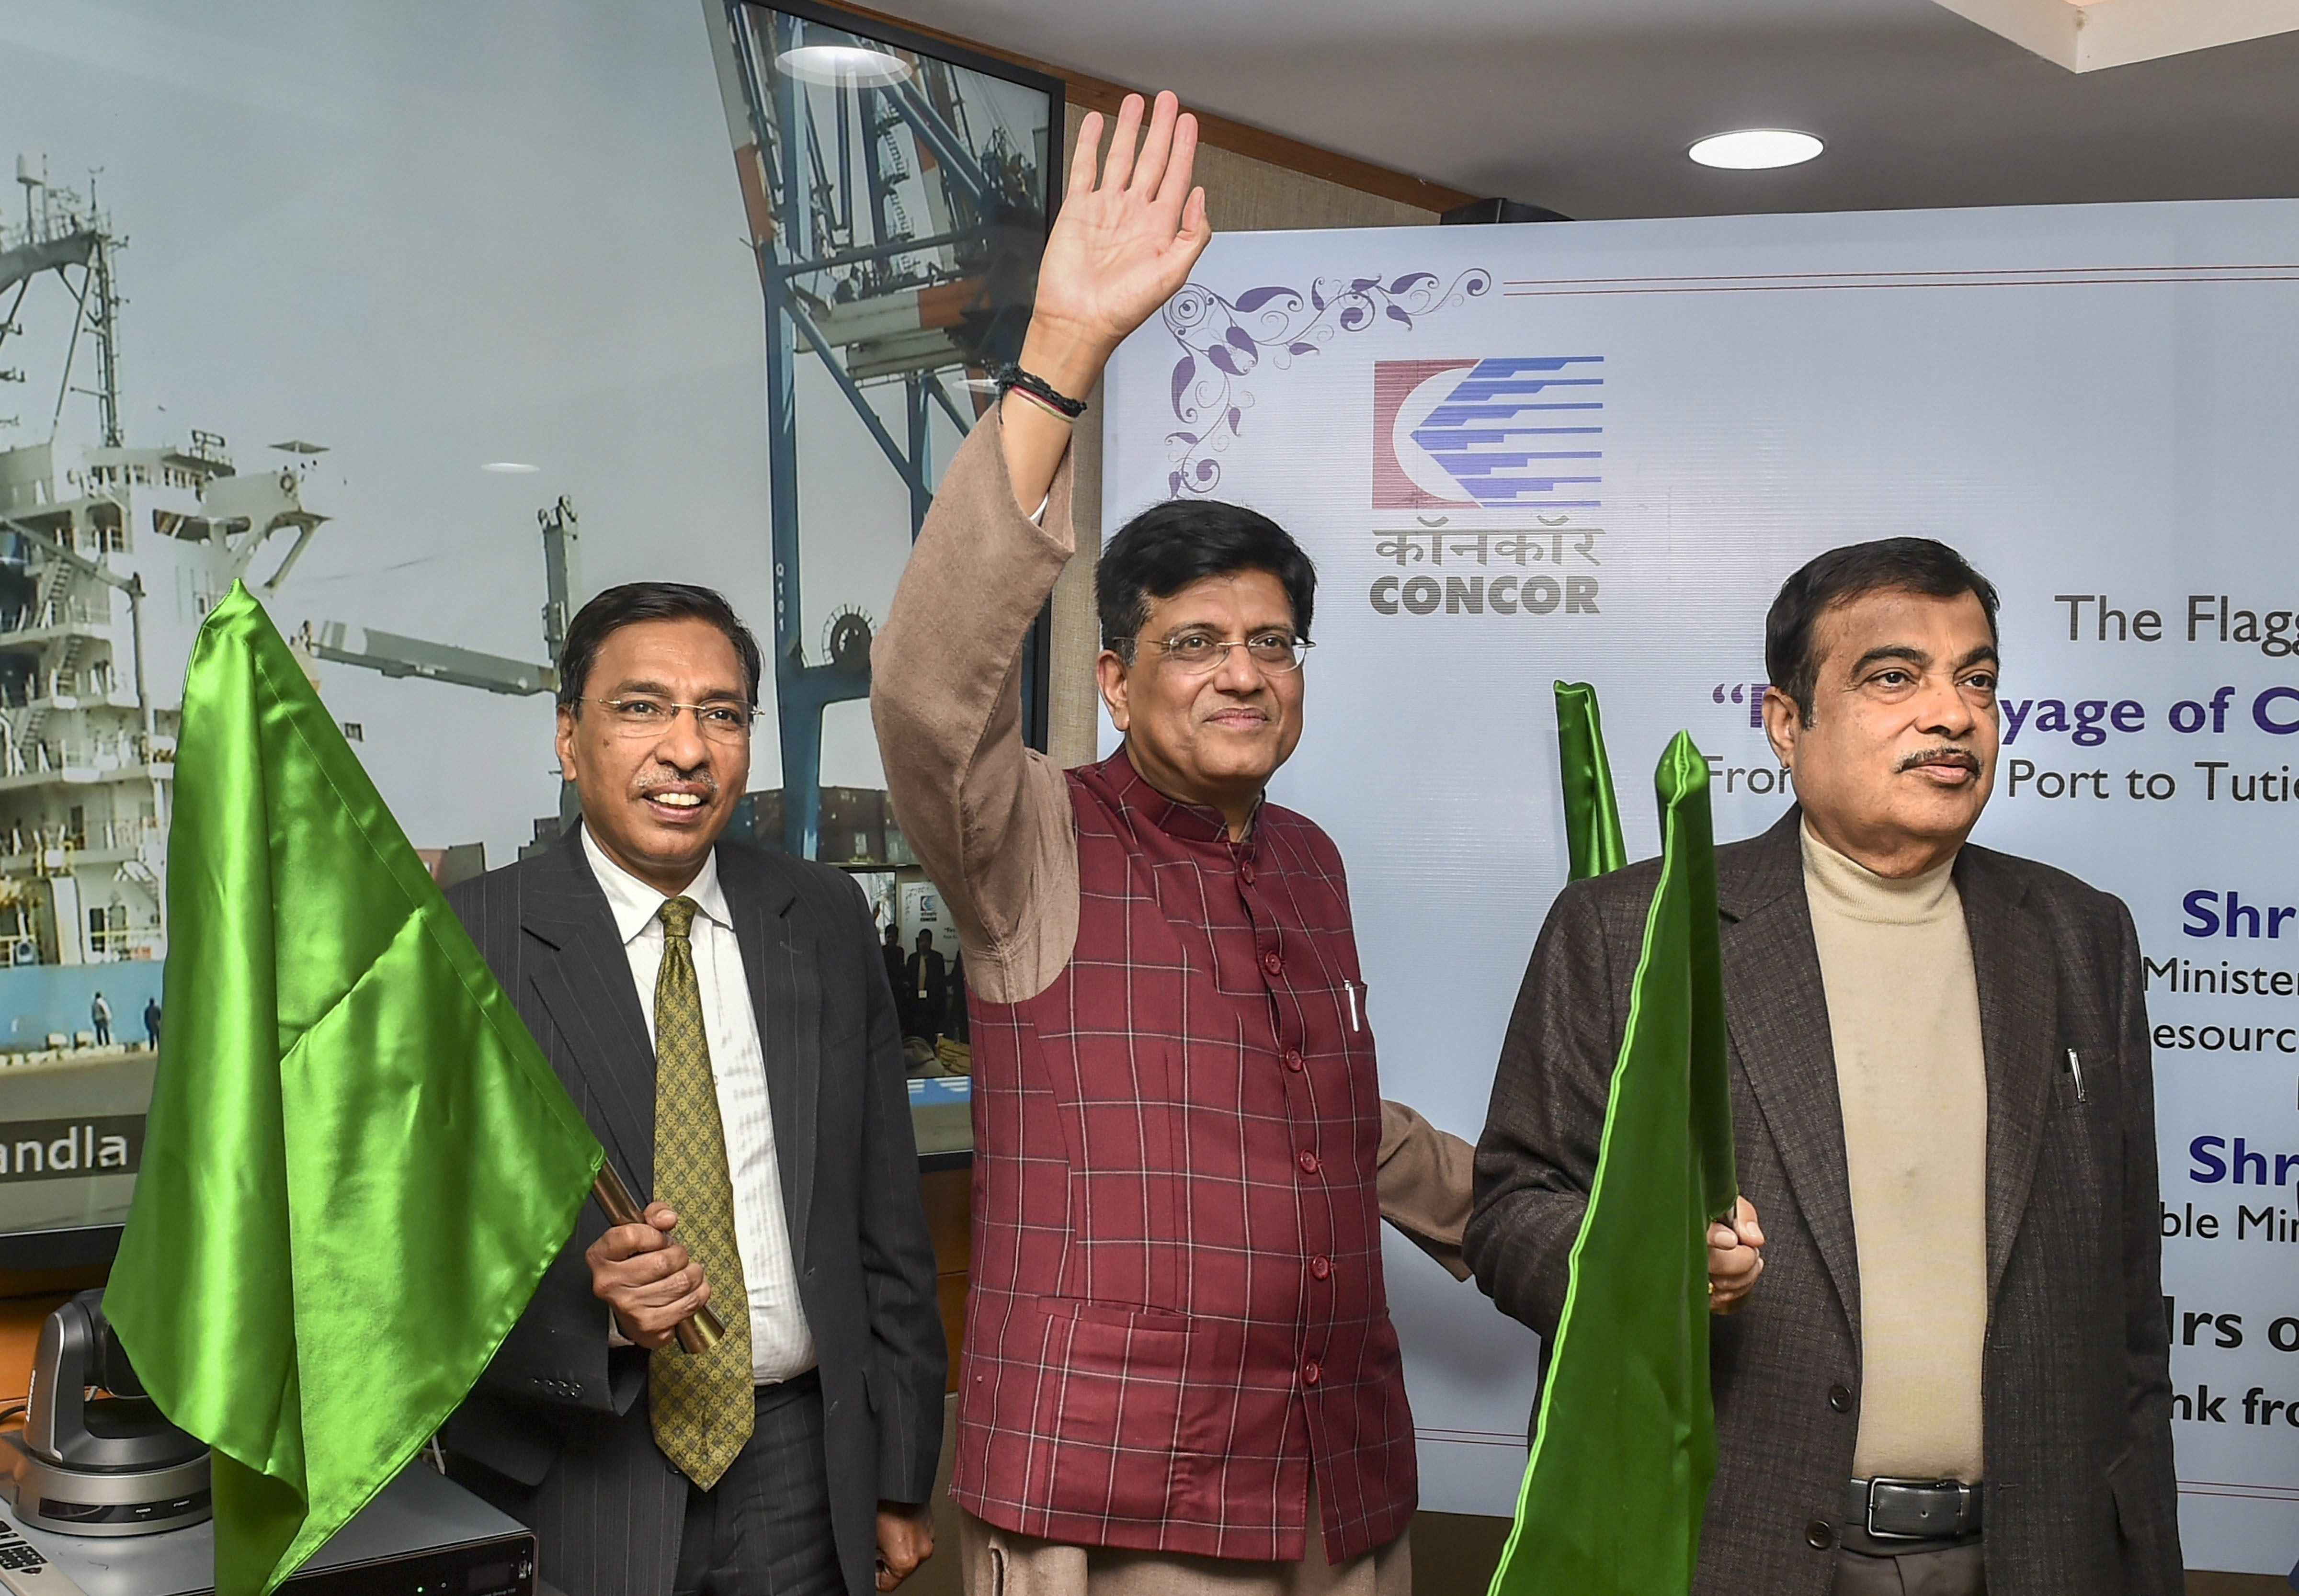 Union Road Transport and Highways Minister Nitin Gadkari and Union Railways Minister Piyush Goyal, during the flag off ceremony of the first voyage of Container Corporation of India (Concor) coastal movement from Kandla Port to Tuticorin Port at Transport Bhawan, in New Delhi  - PTI